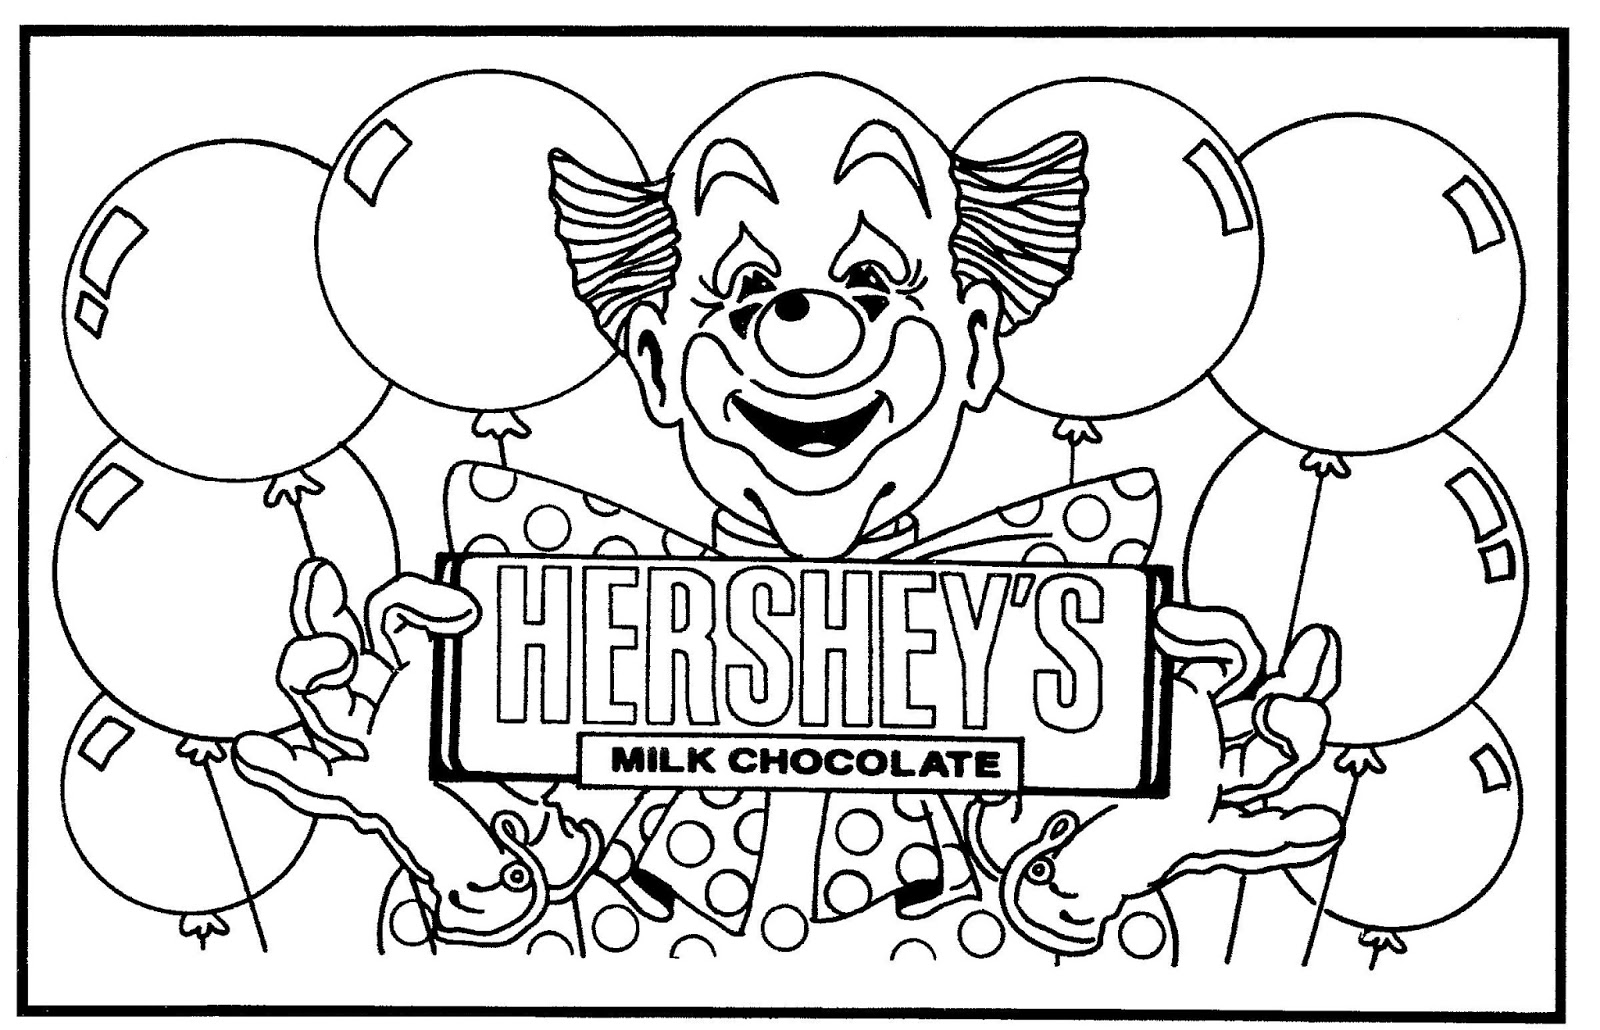 clip art hershey kiss coloring page hershey kiss coloring page free google twit chocolate coloring